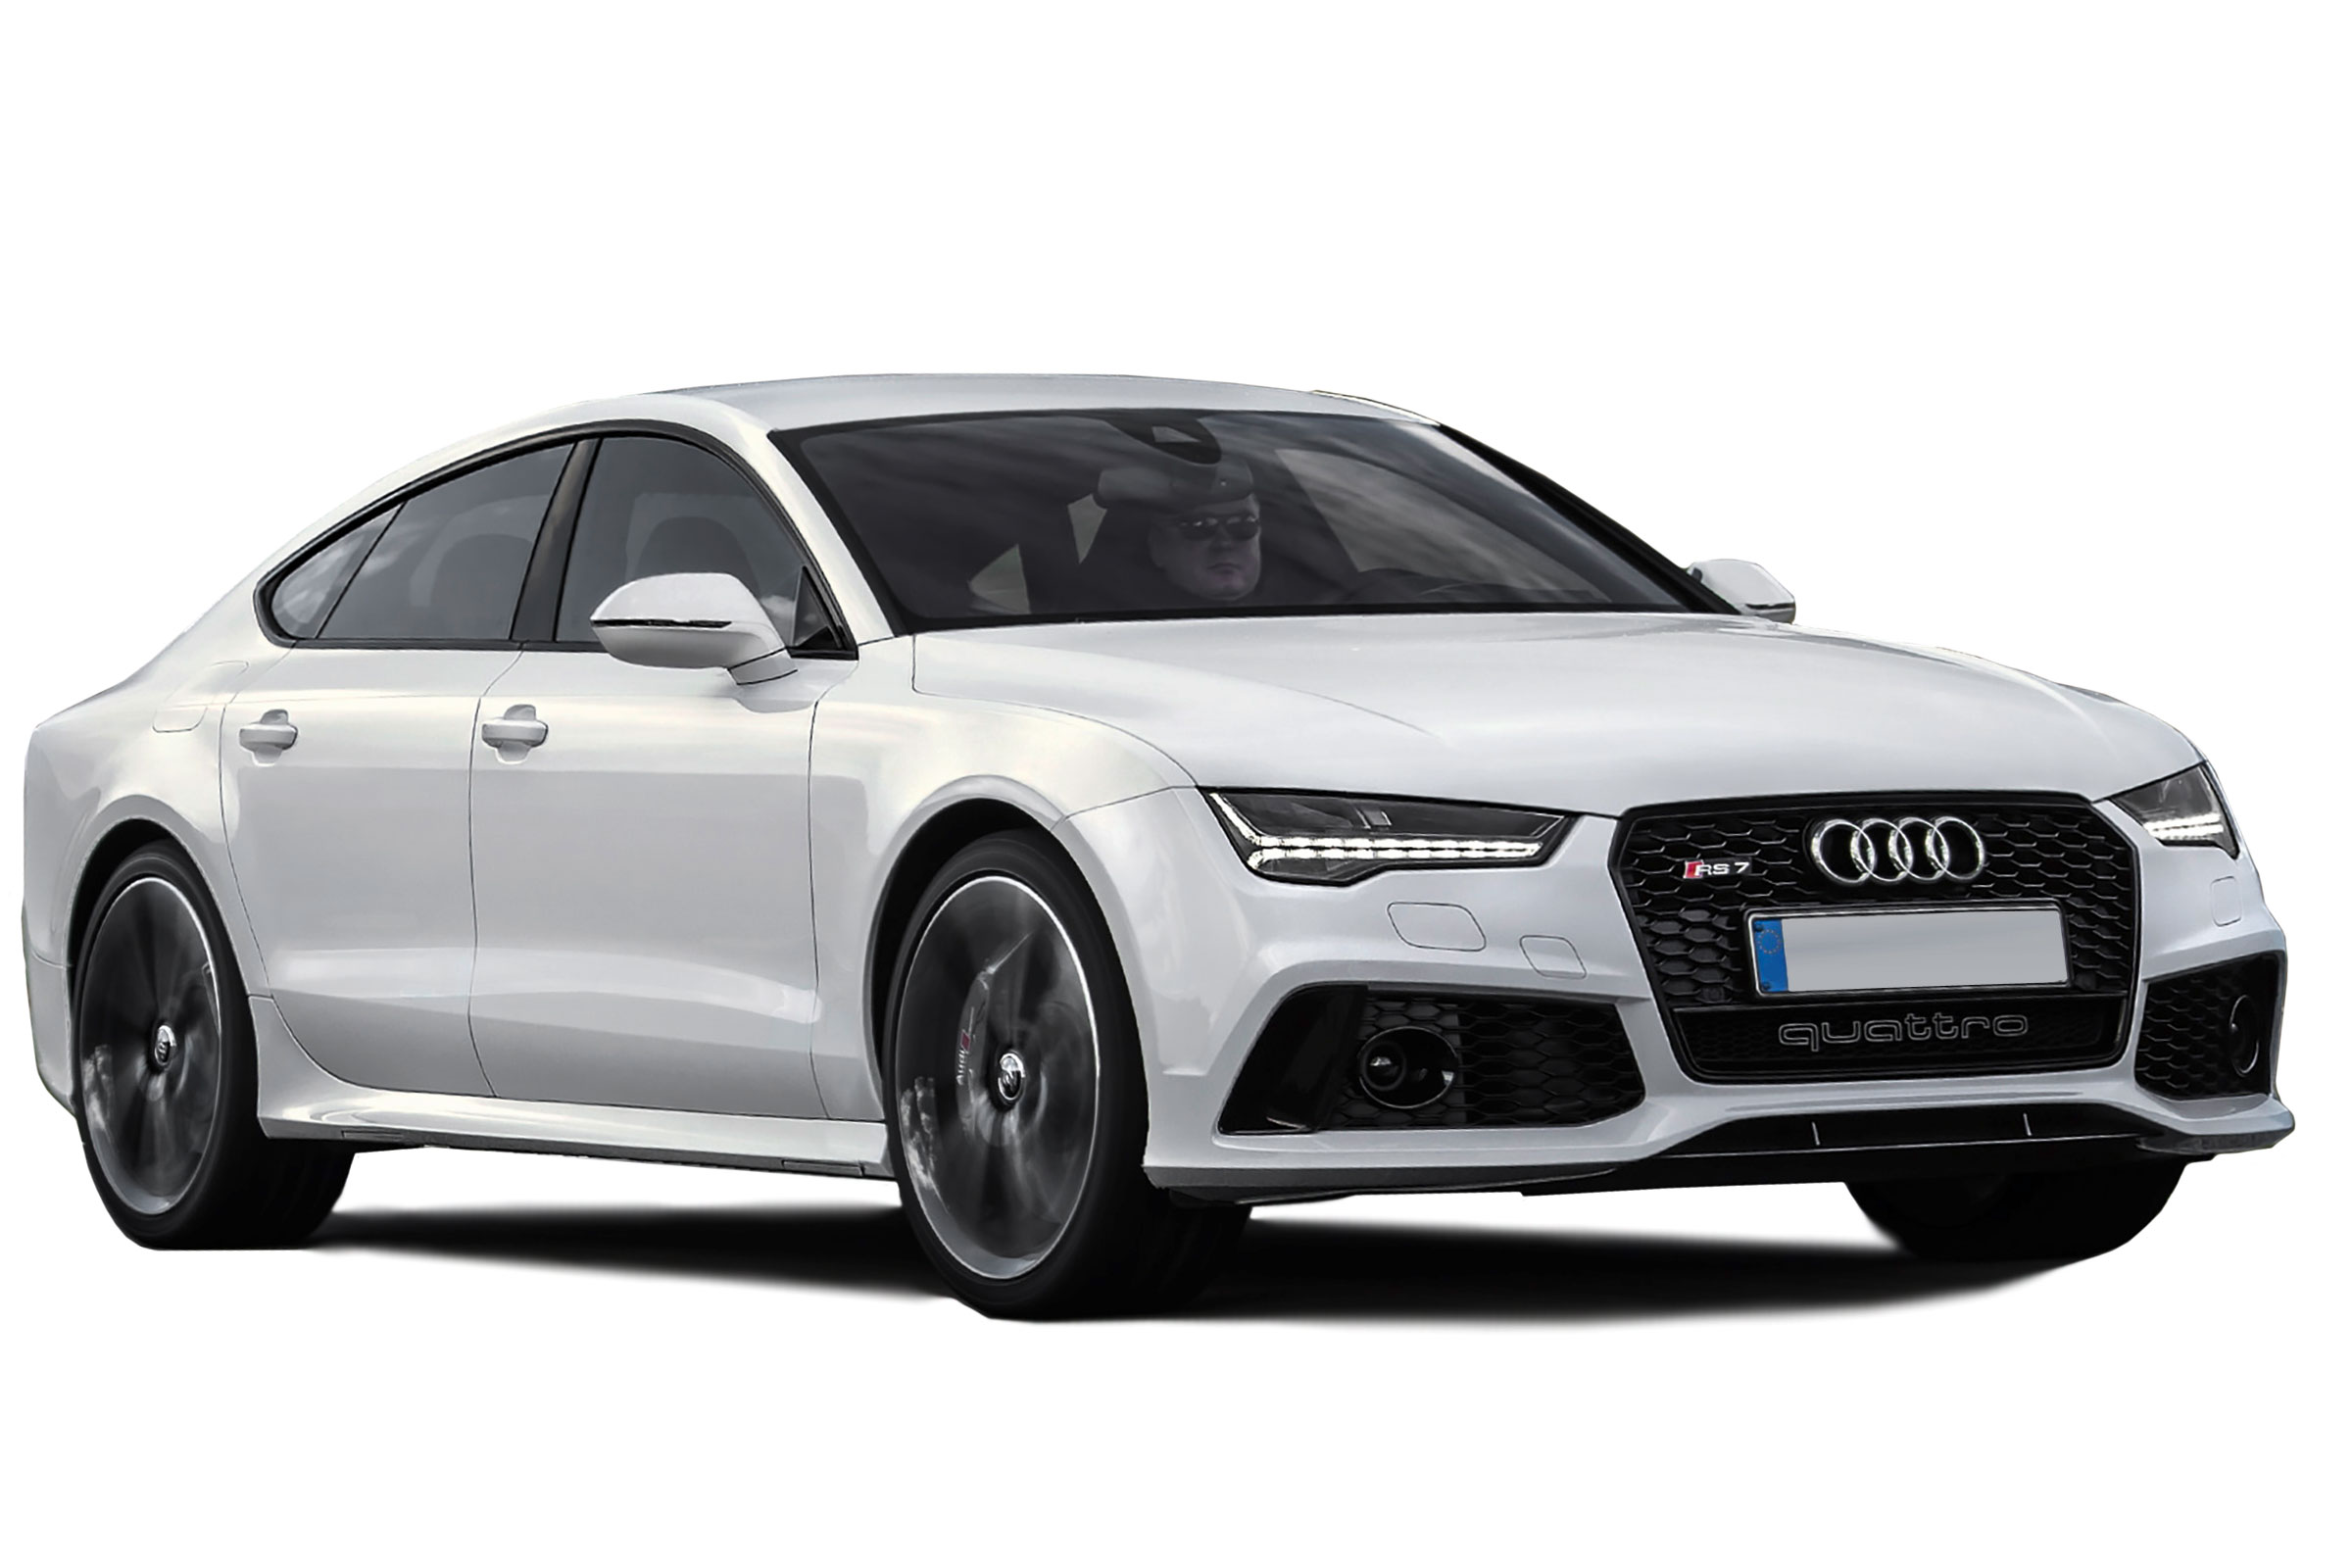 Audi rs3 price in india 2017 13